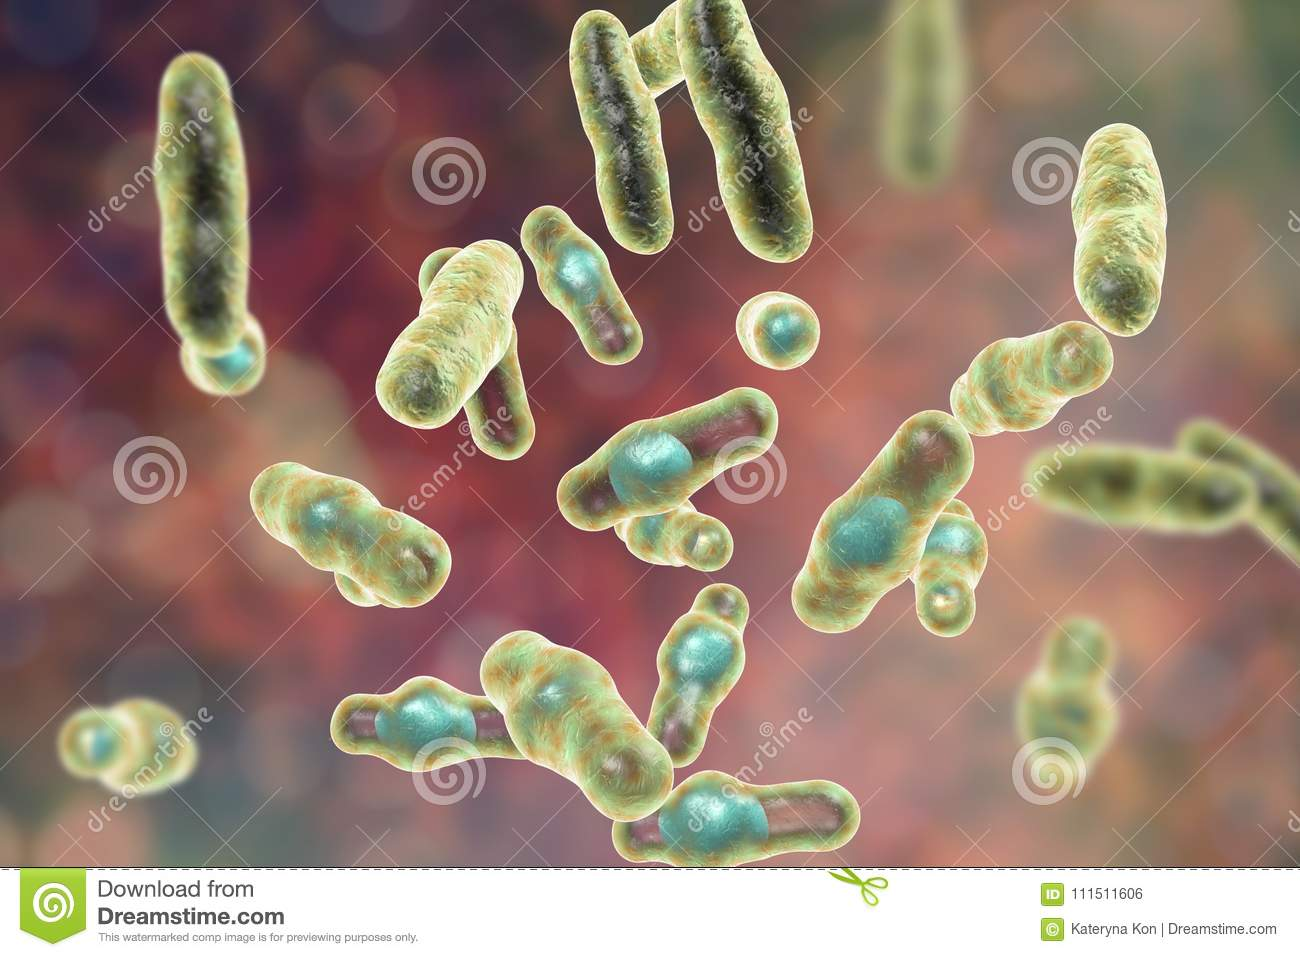 what is the infectious agent that causes clostridium perfringens